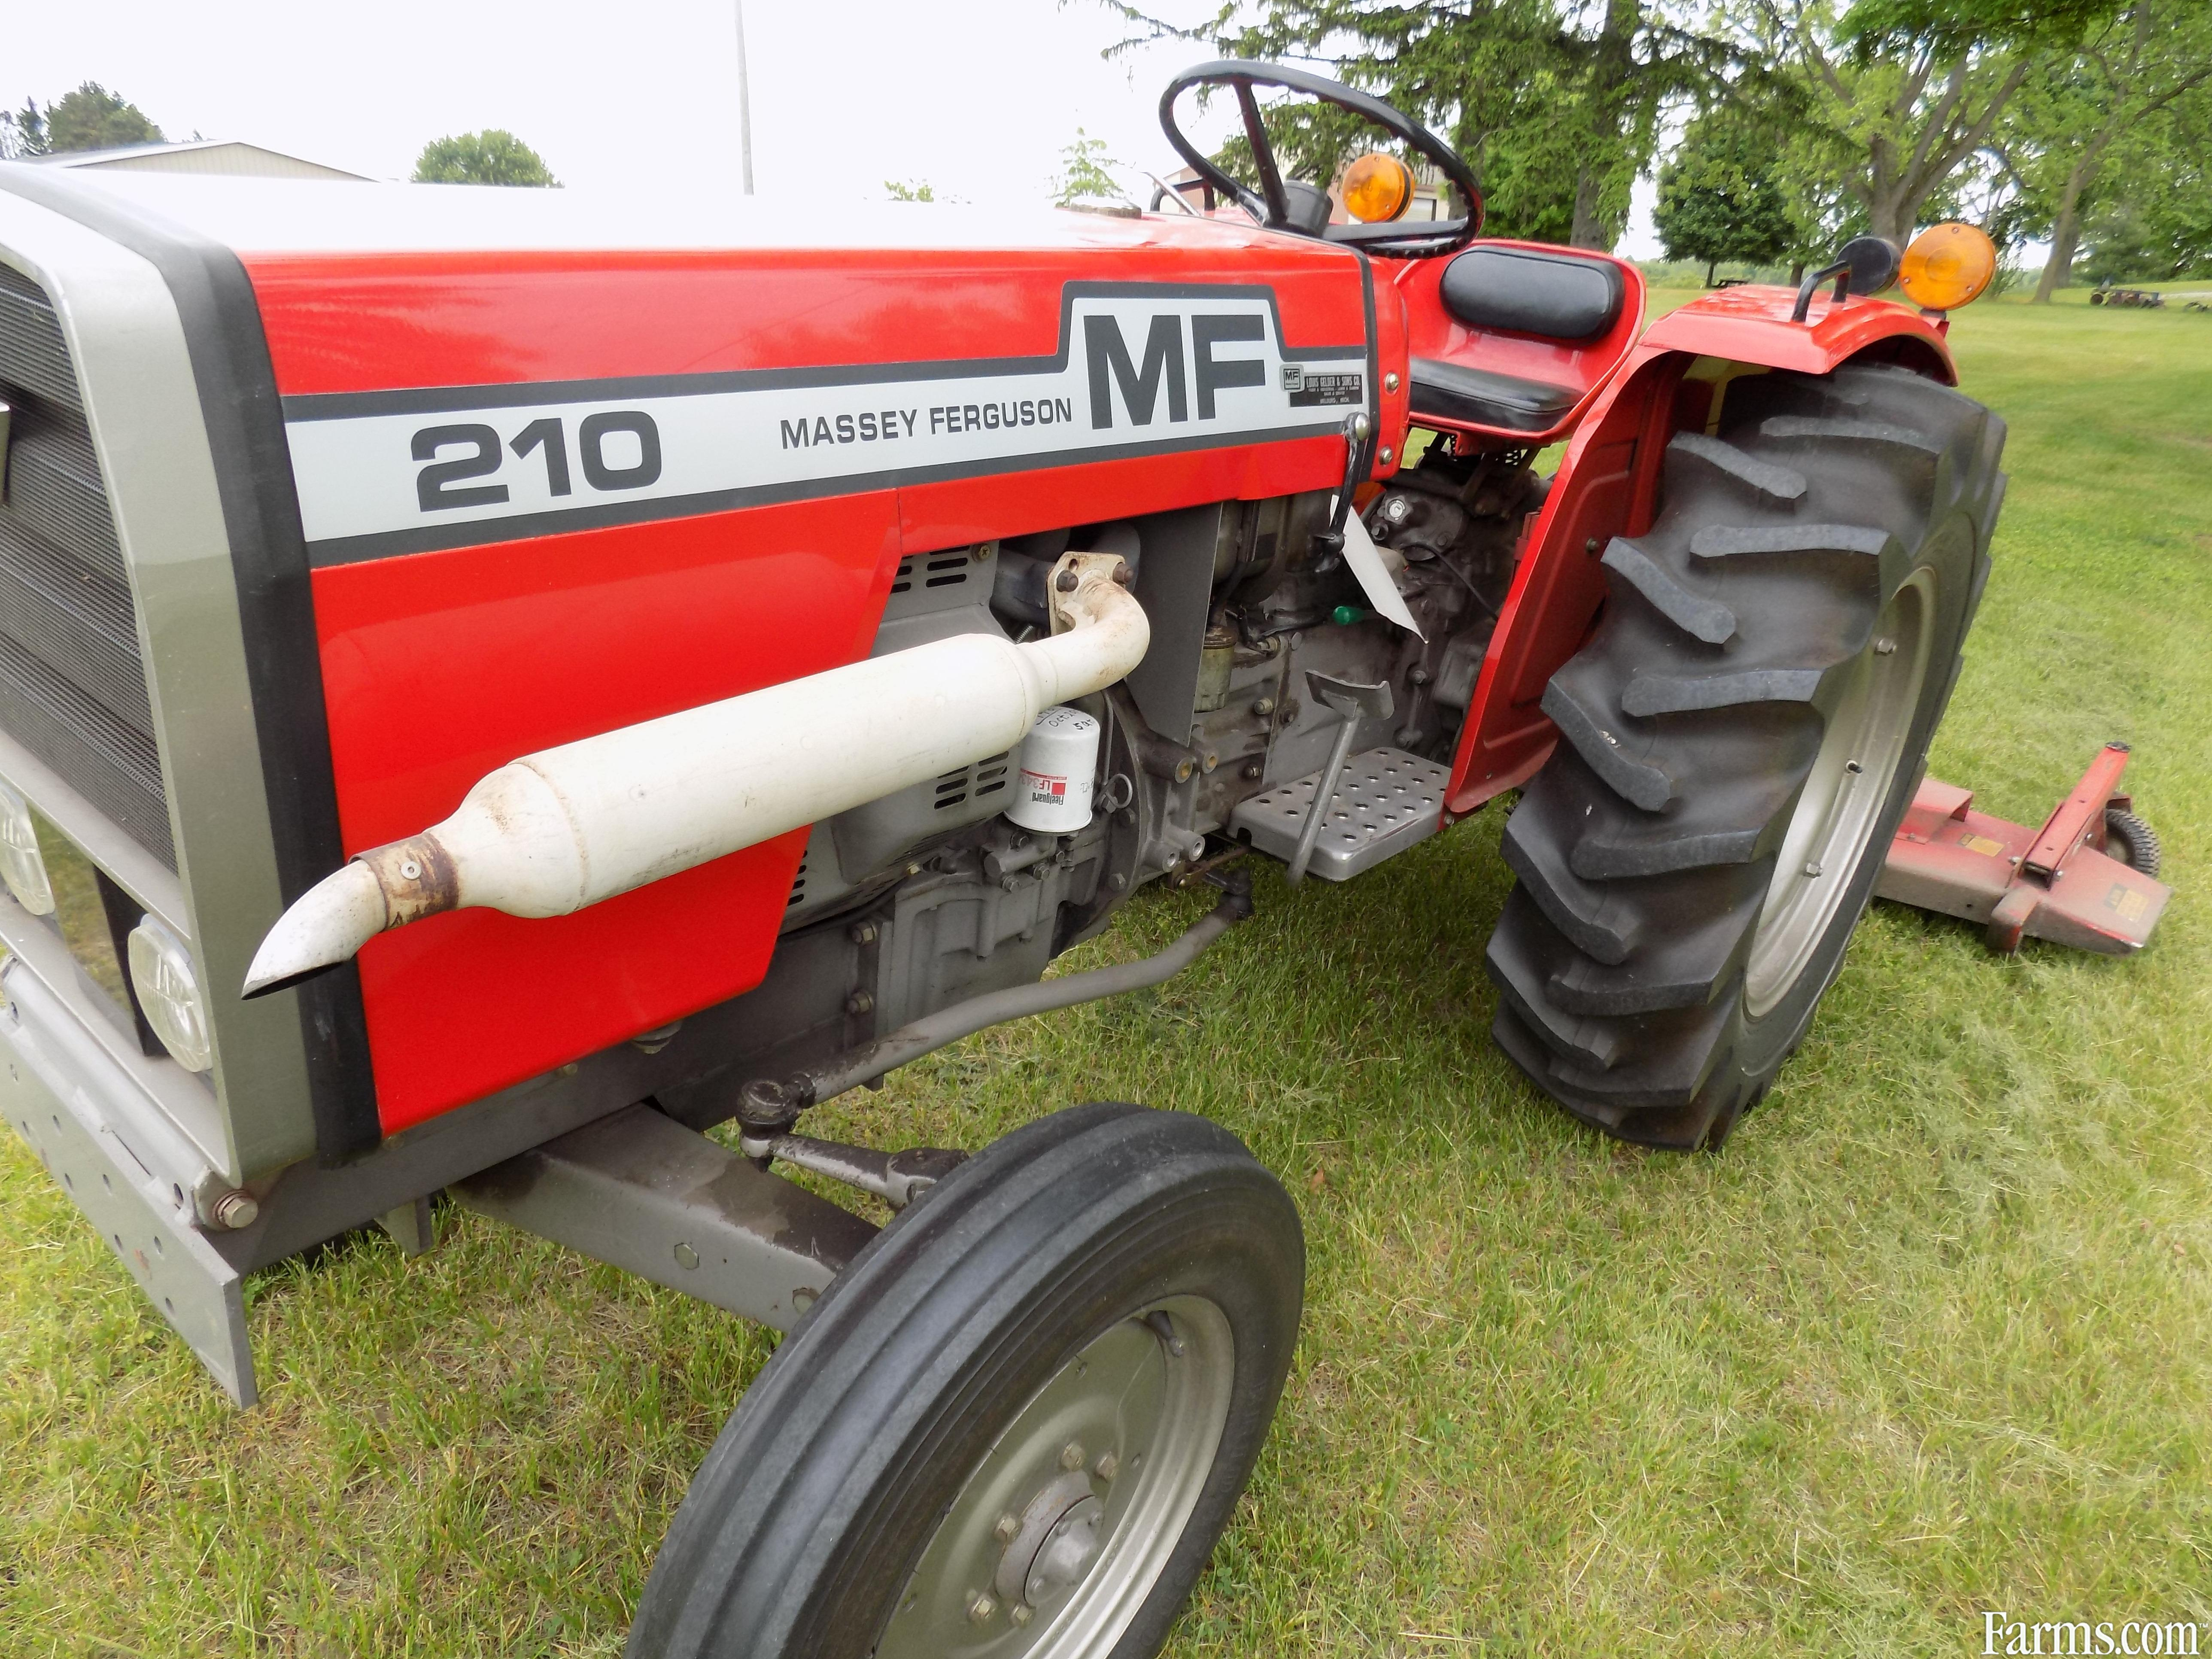 Massey Ferguson 210 Tractor : Massey ferguson other tractors for sale usfarmer